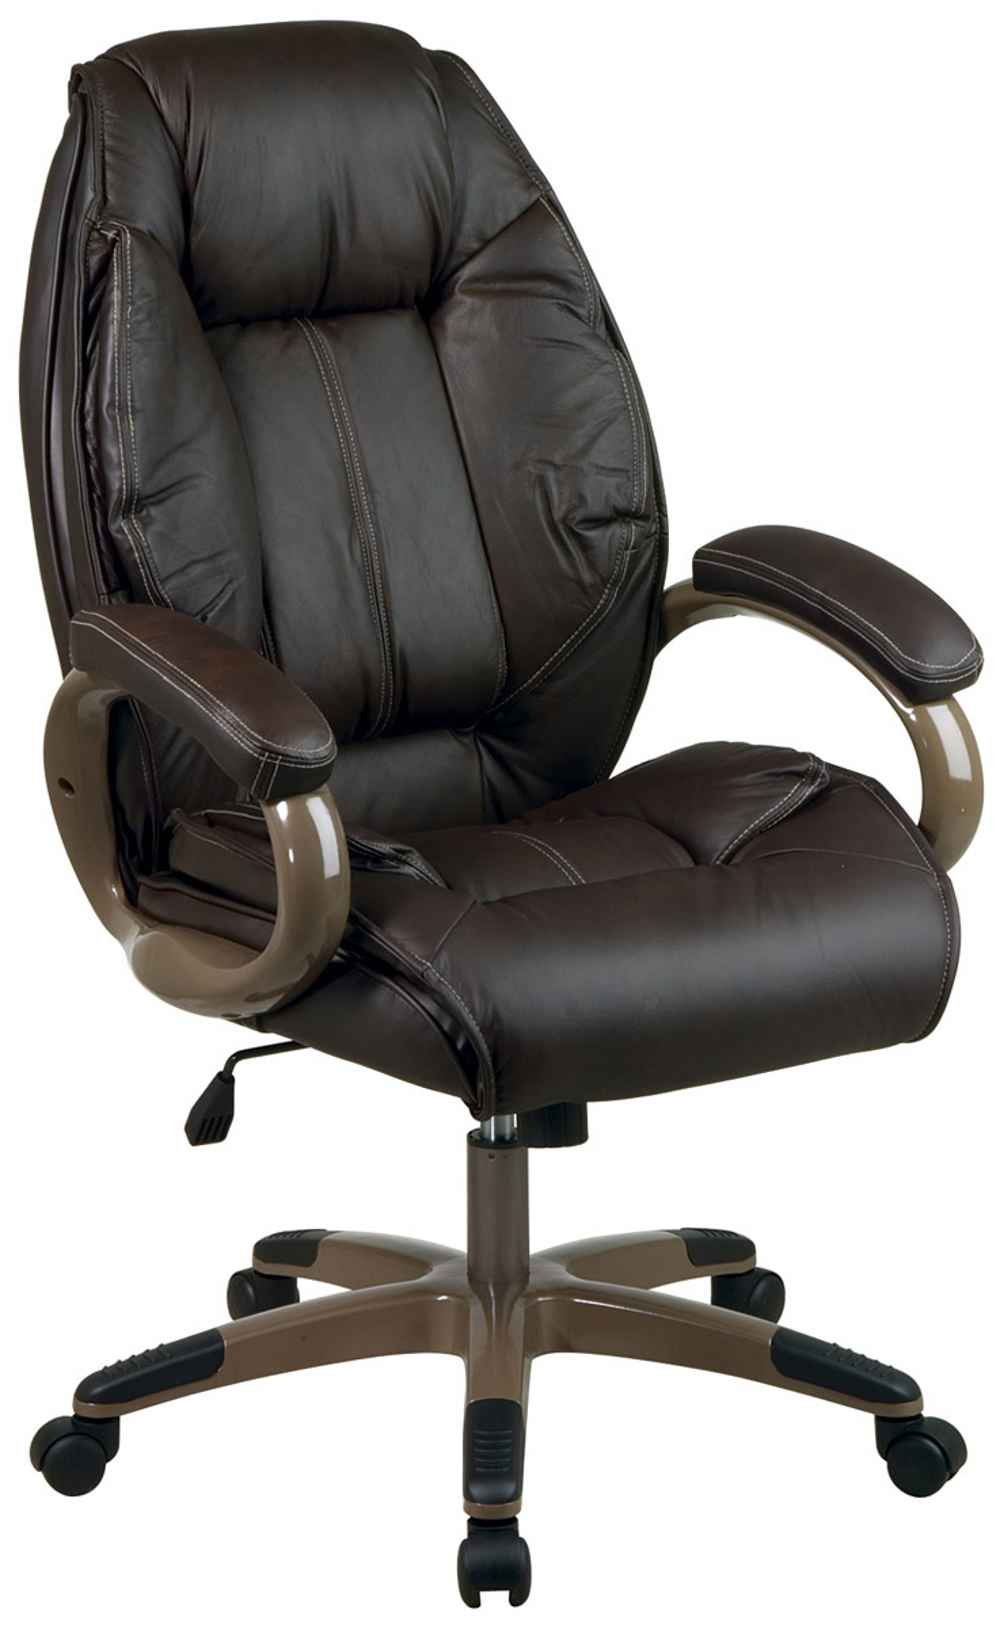 Computer Desk Chair Buying Guide : Executive adjustable espresso office computer chair from office-turn.com size 1000 x 1628 jpeg 57kB